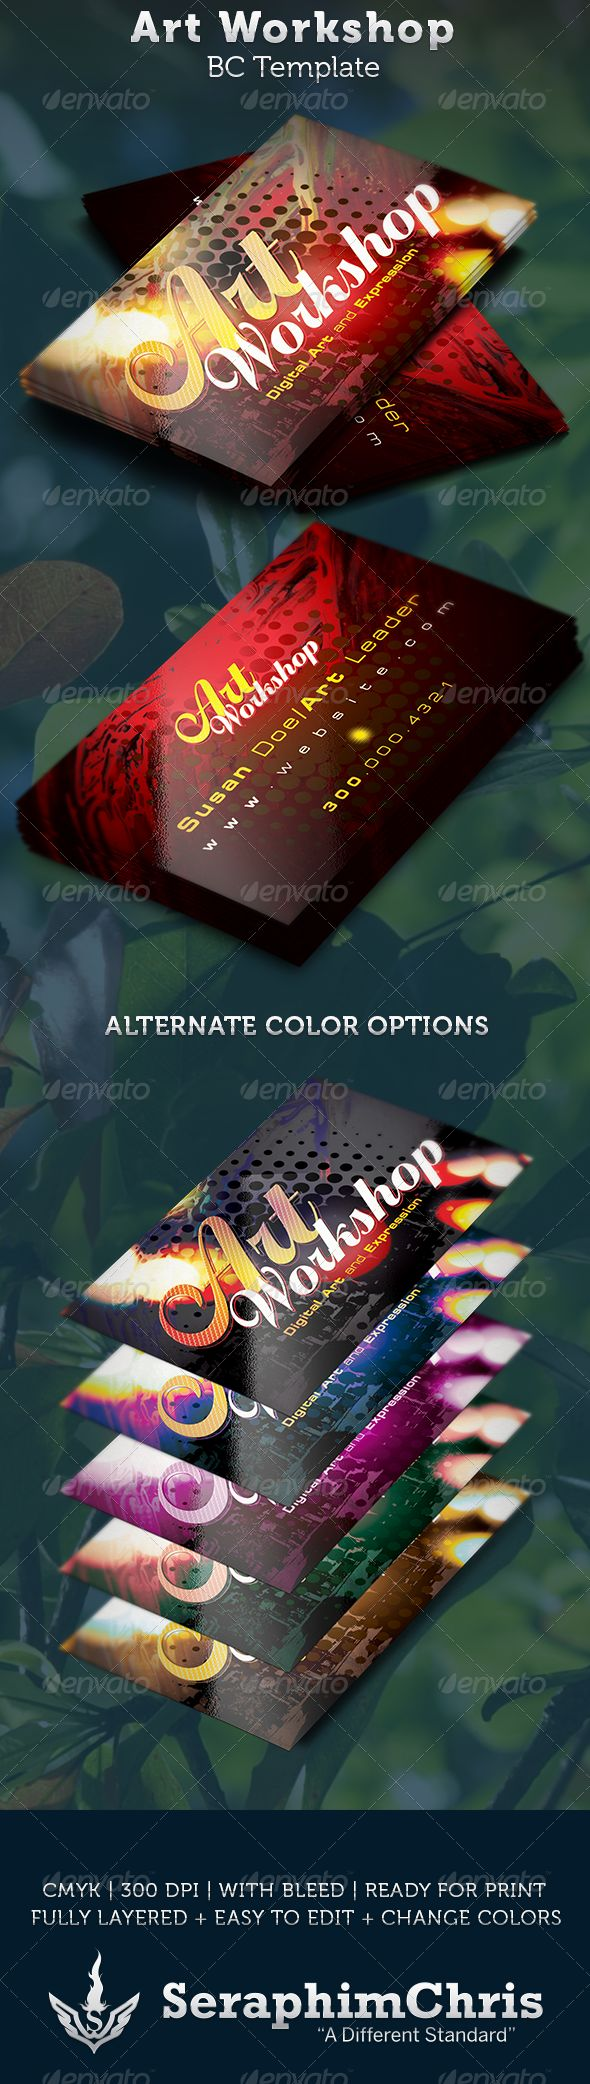 220 best business cards templates images on pinterest corporate art workshop business card template magicingreecefo Image collections